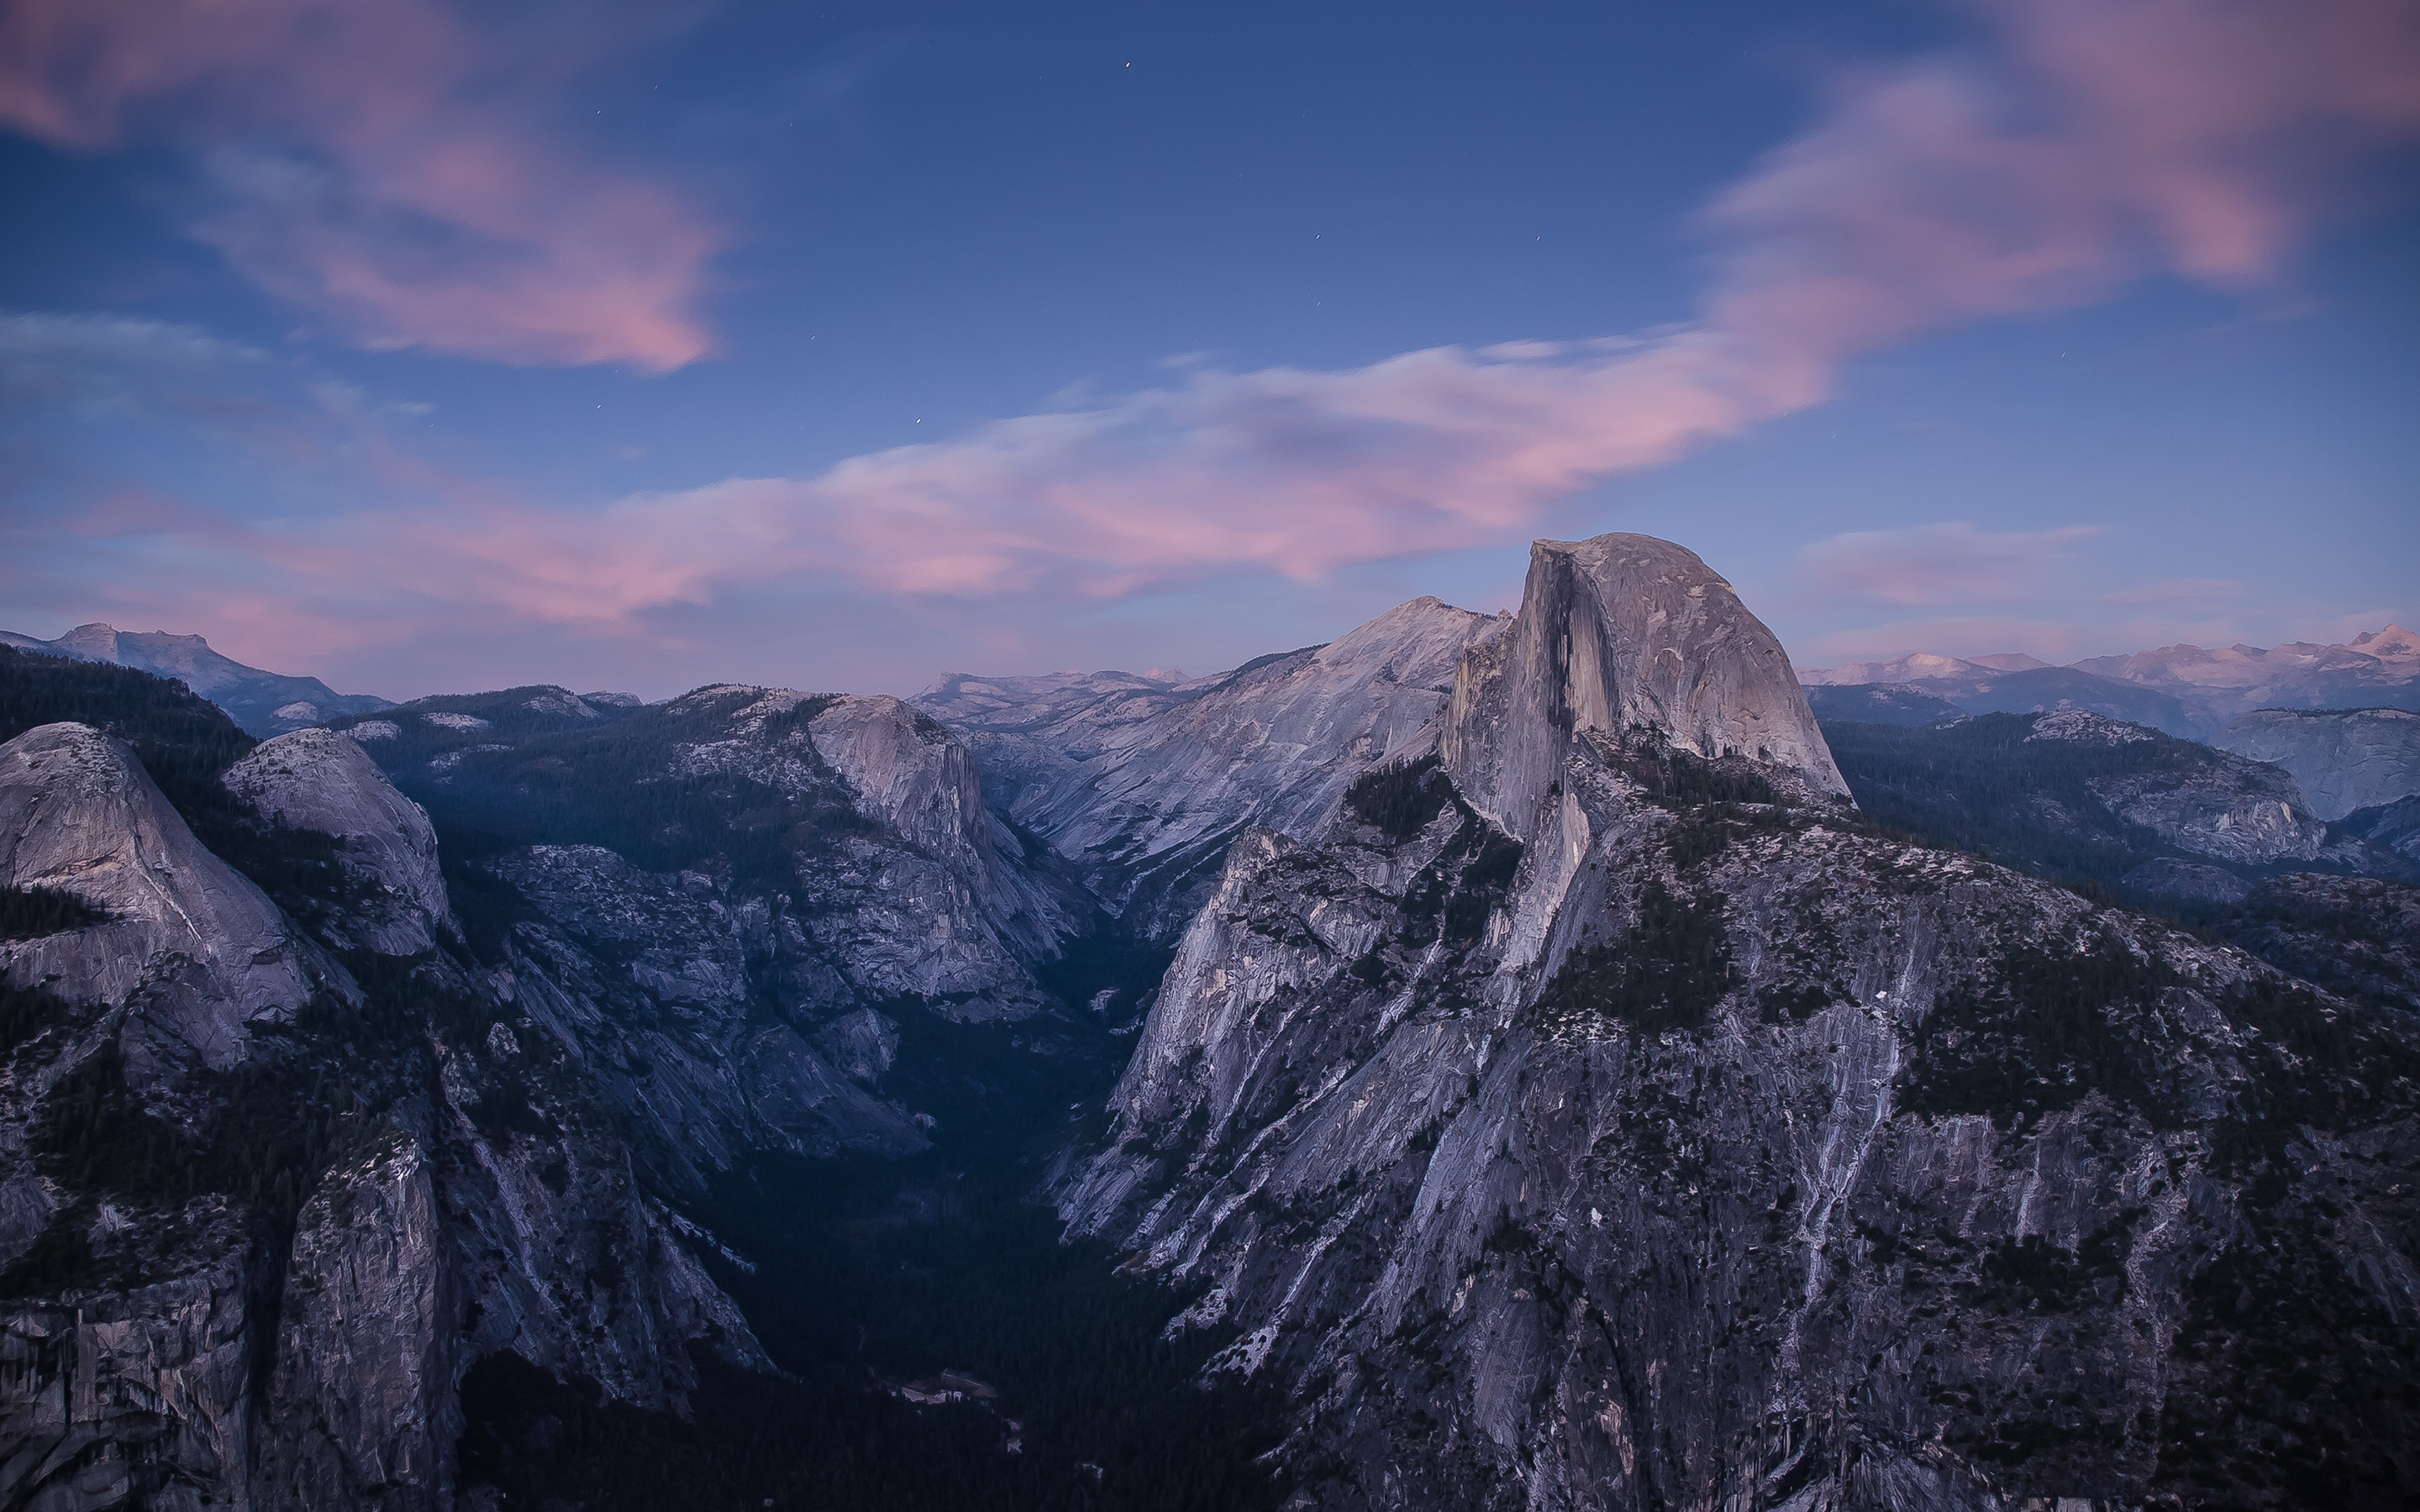 2880x1800 ... Mac OSX El Capitan Yosemite 5K Ultra HD Desktop Wallpaper ...